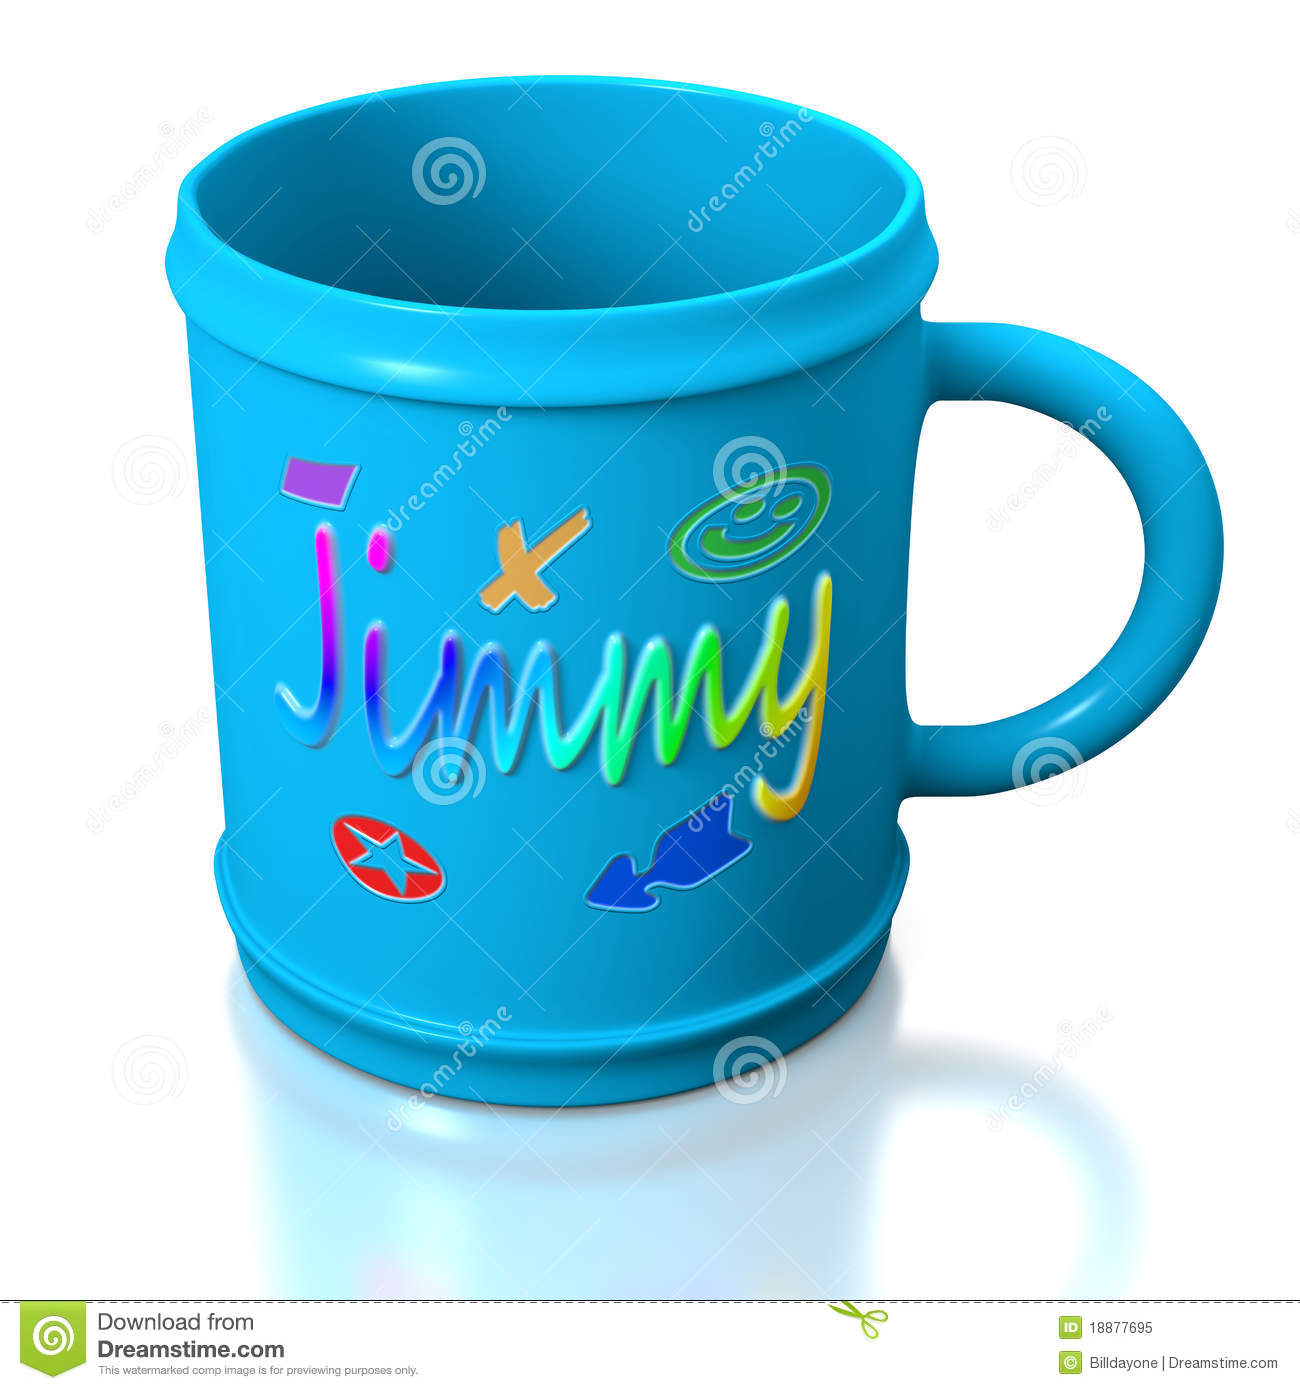 Tasse en plastique personnalis e bleue photo libre de - Creation de tasse personnalisee ...